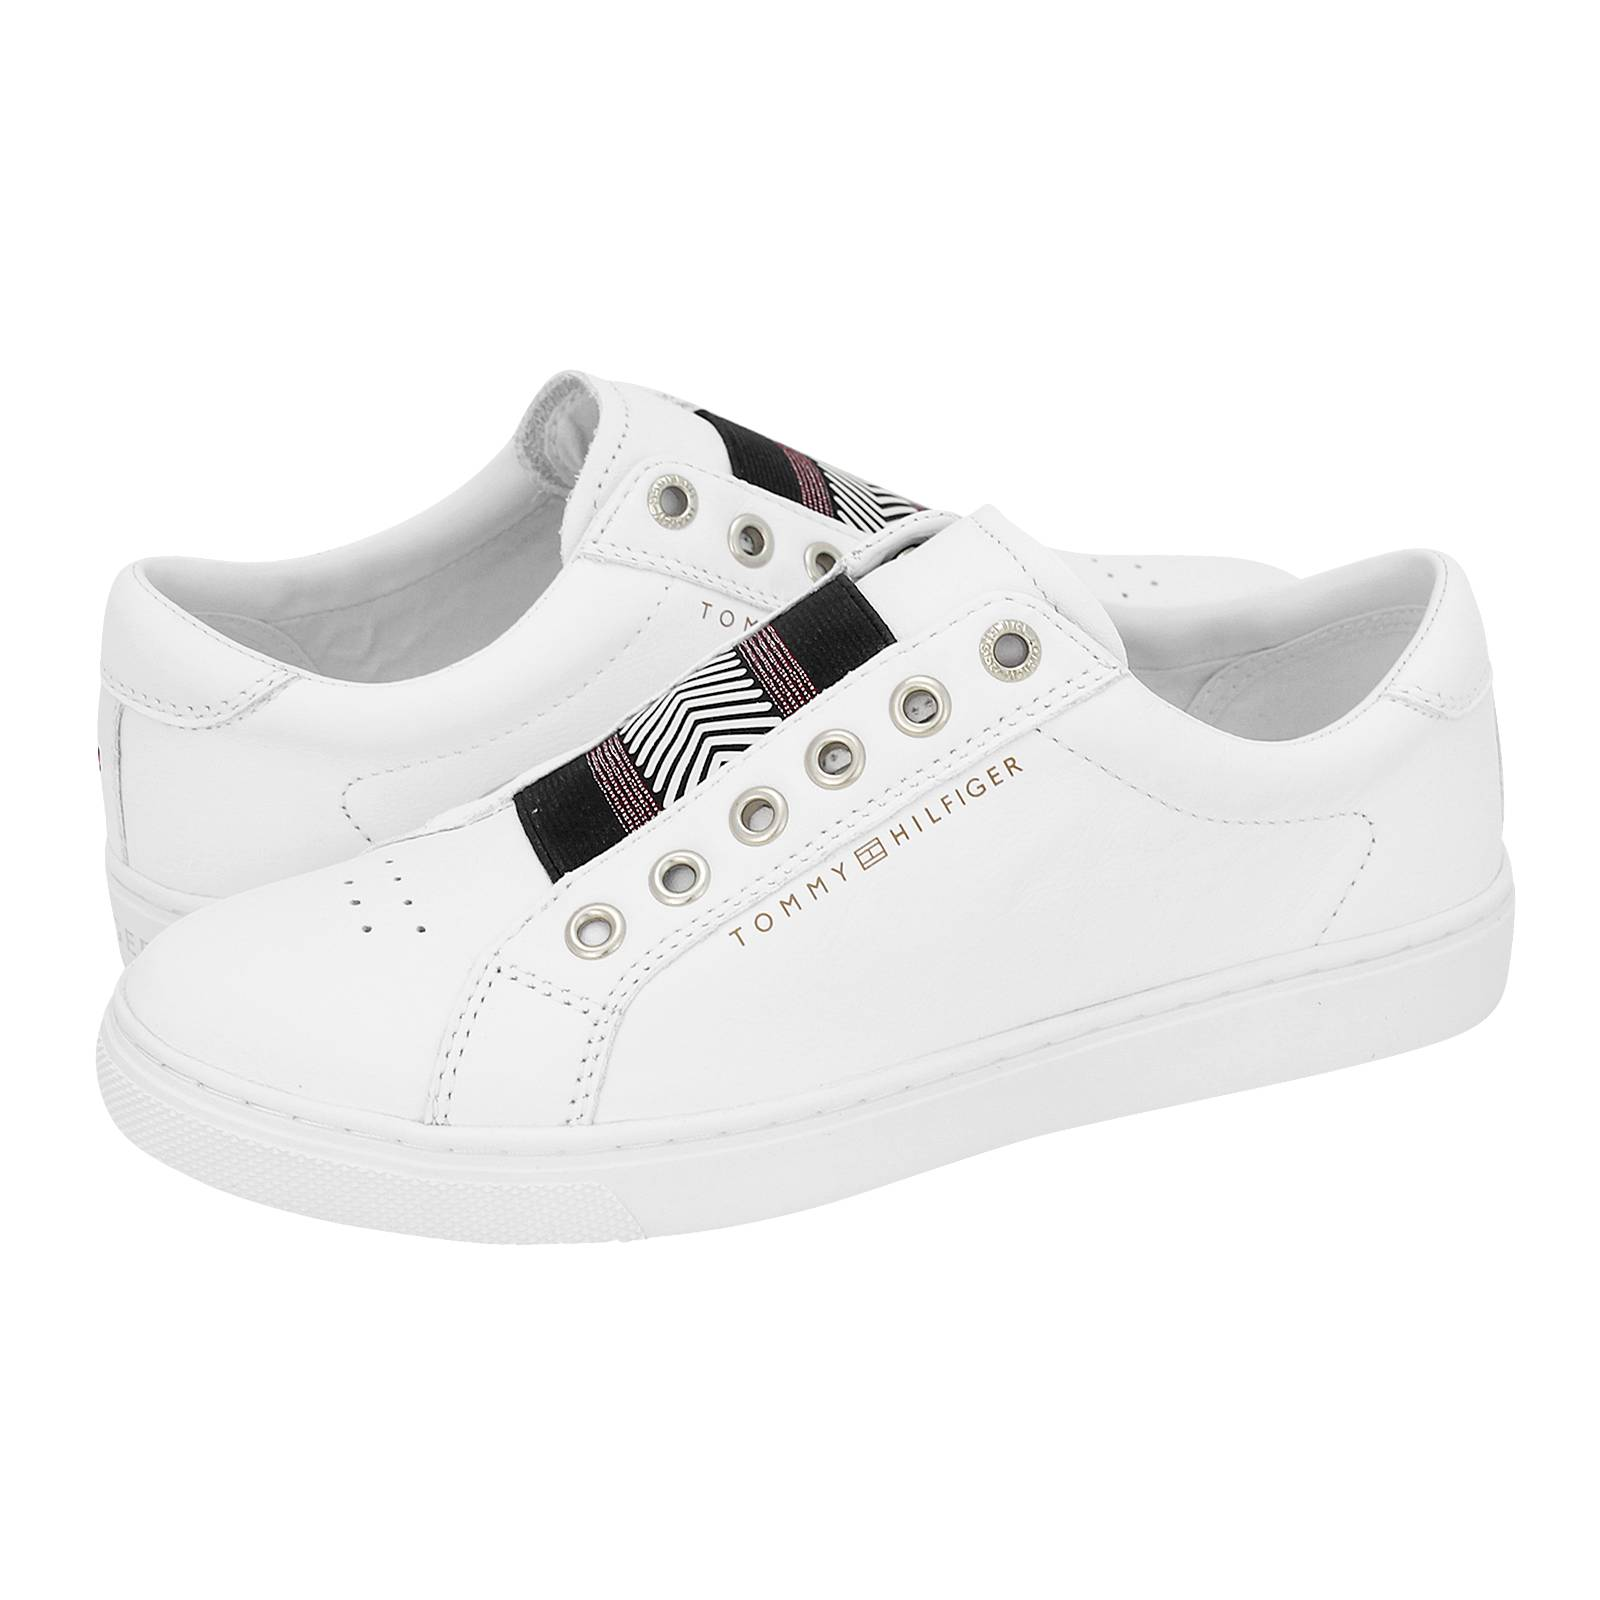 Womens Iconic Metallic Elastic Low-Top Sneakers, White Tommy Hilfiger